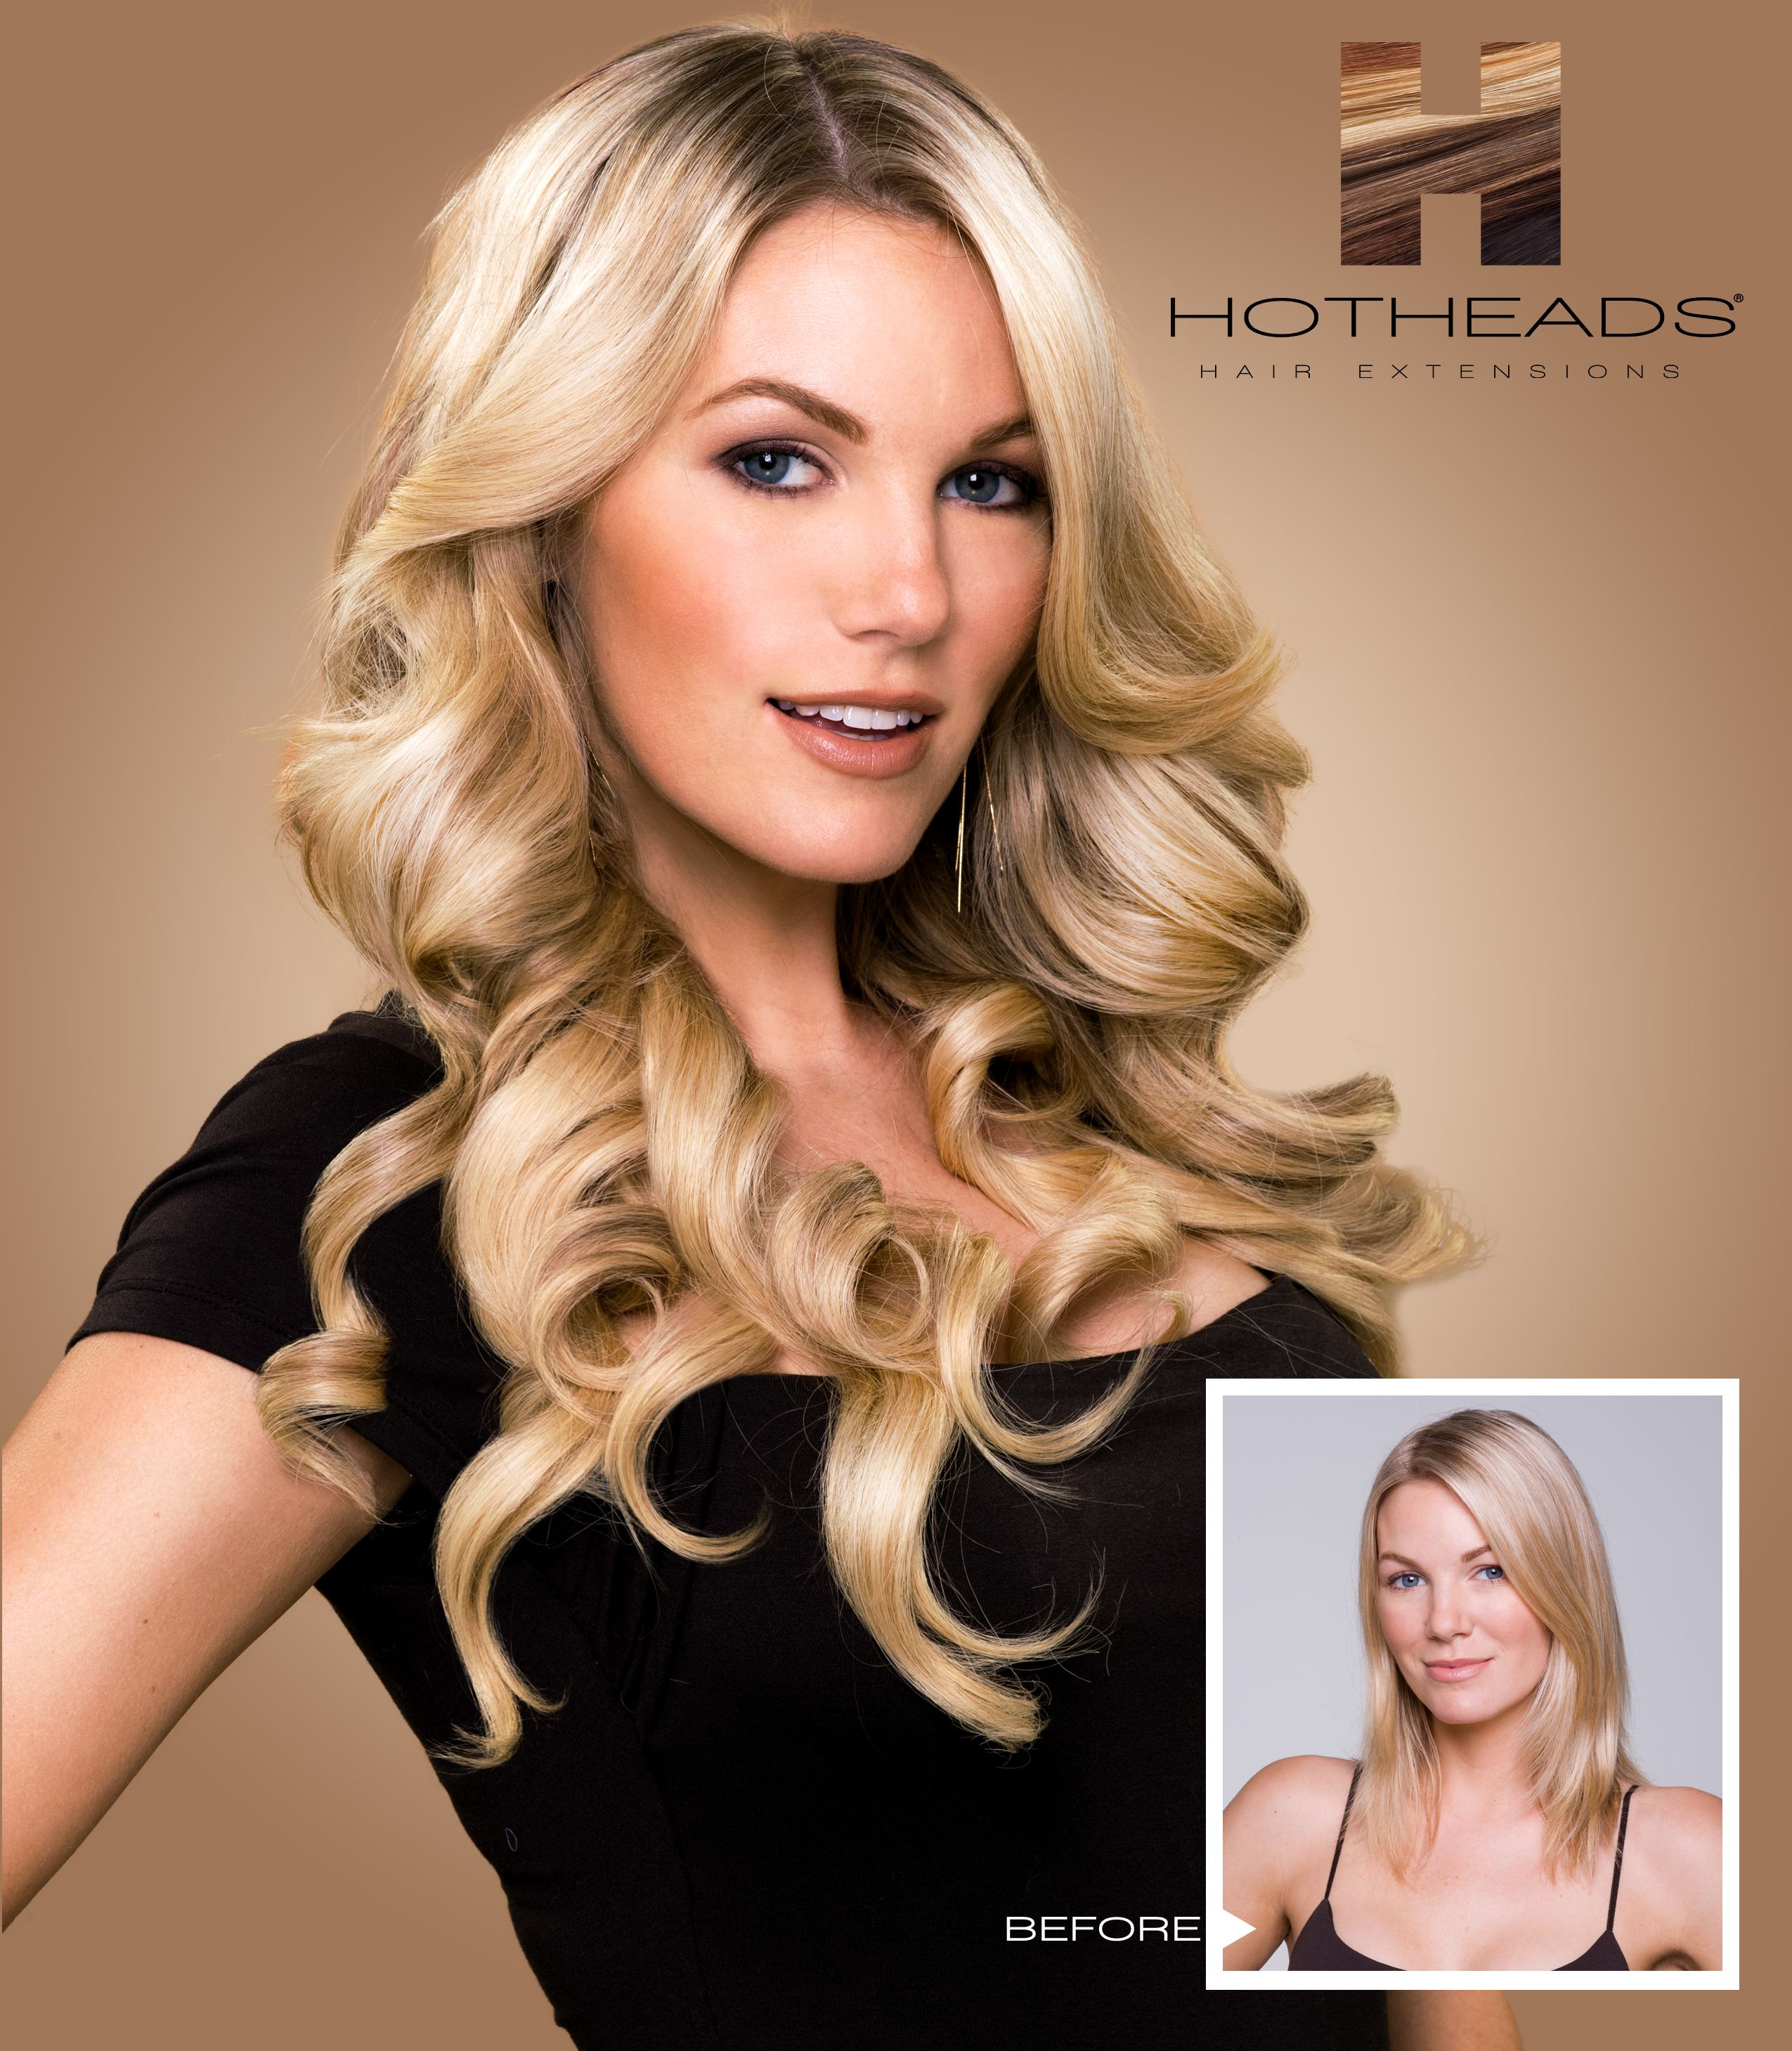 Volume Length u Color Effects with Hotheads Hair Extensions  Hair